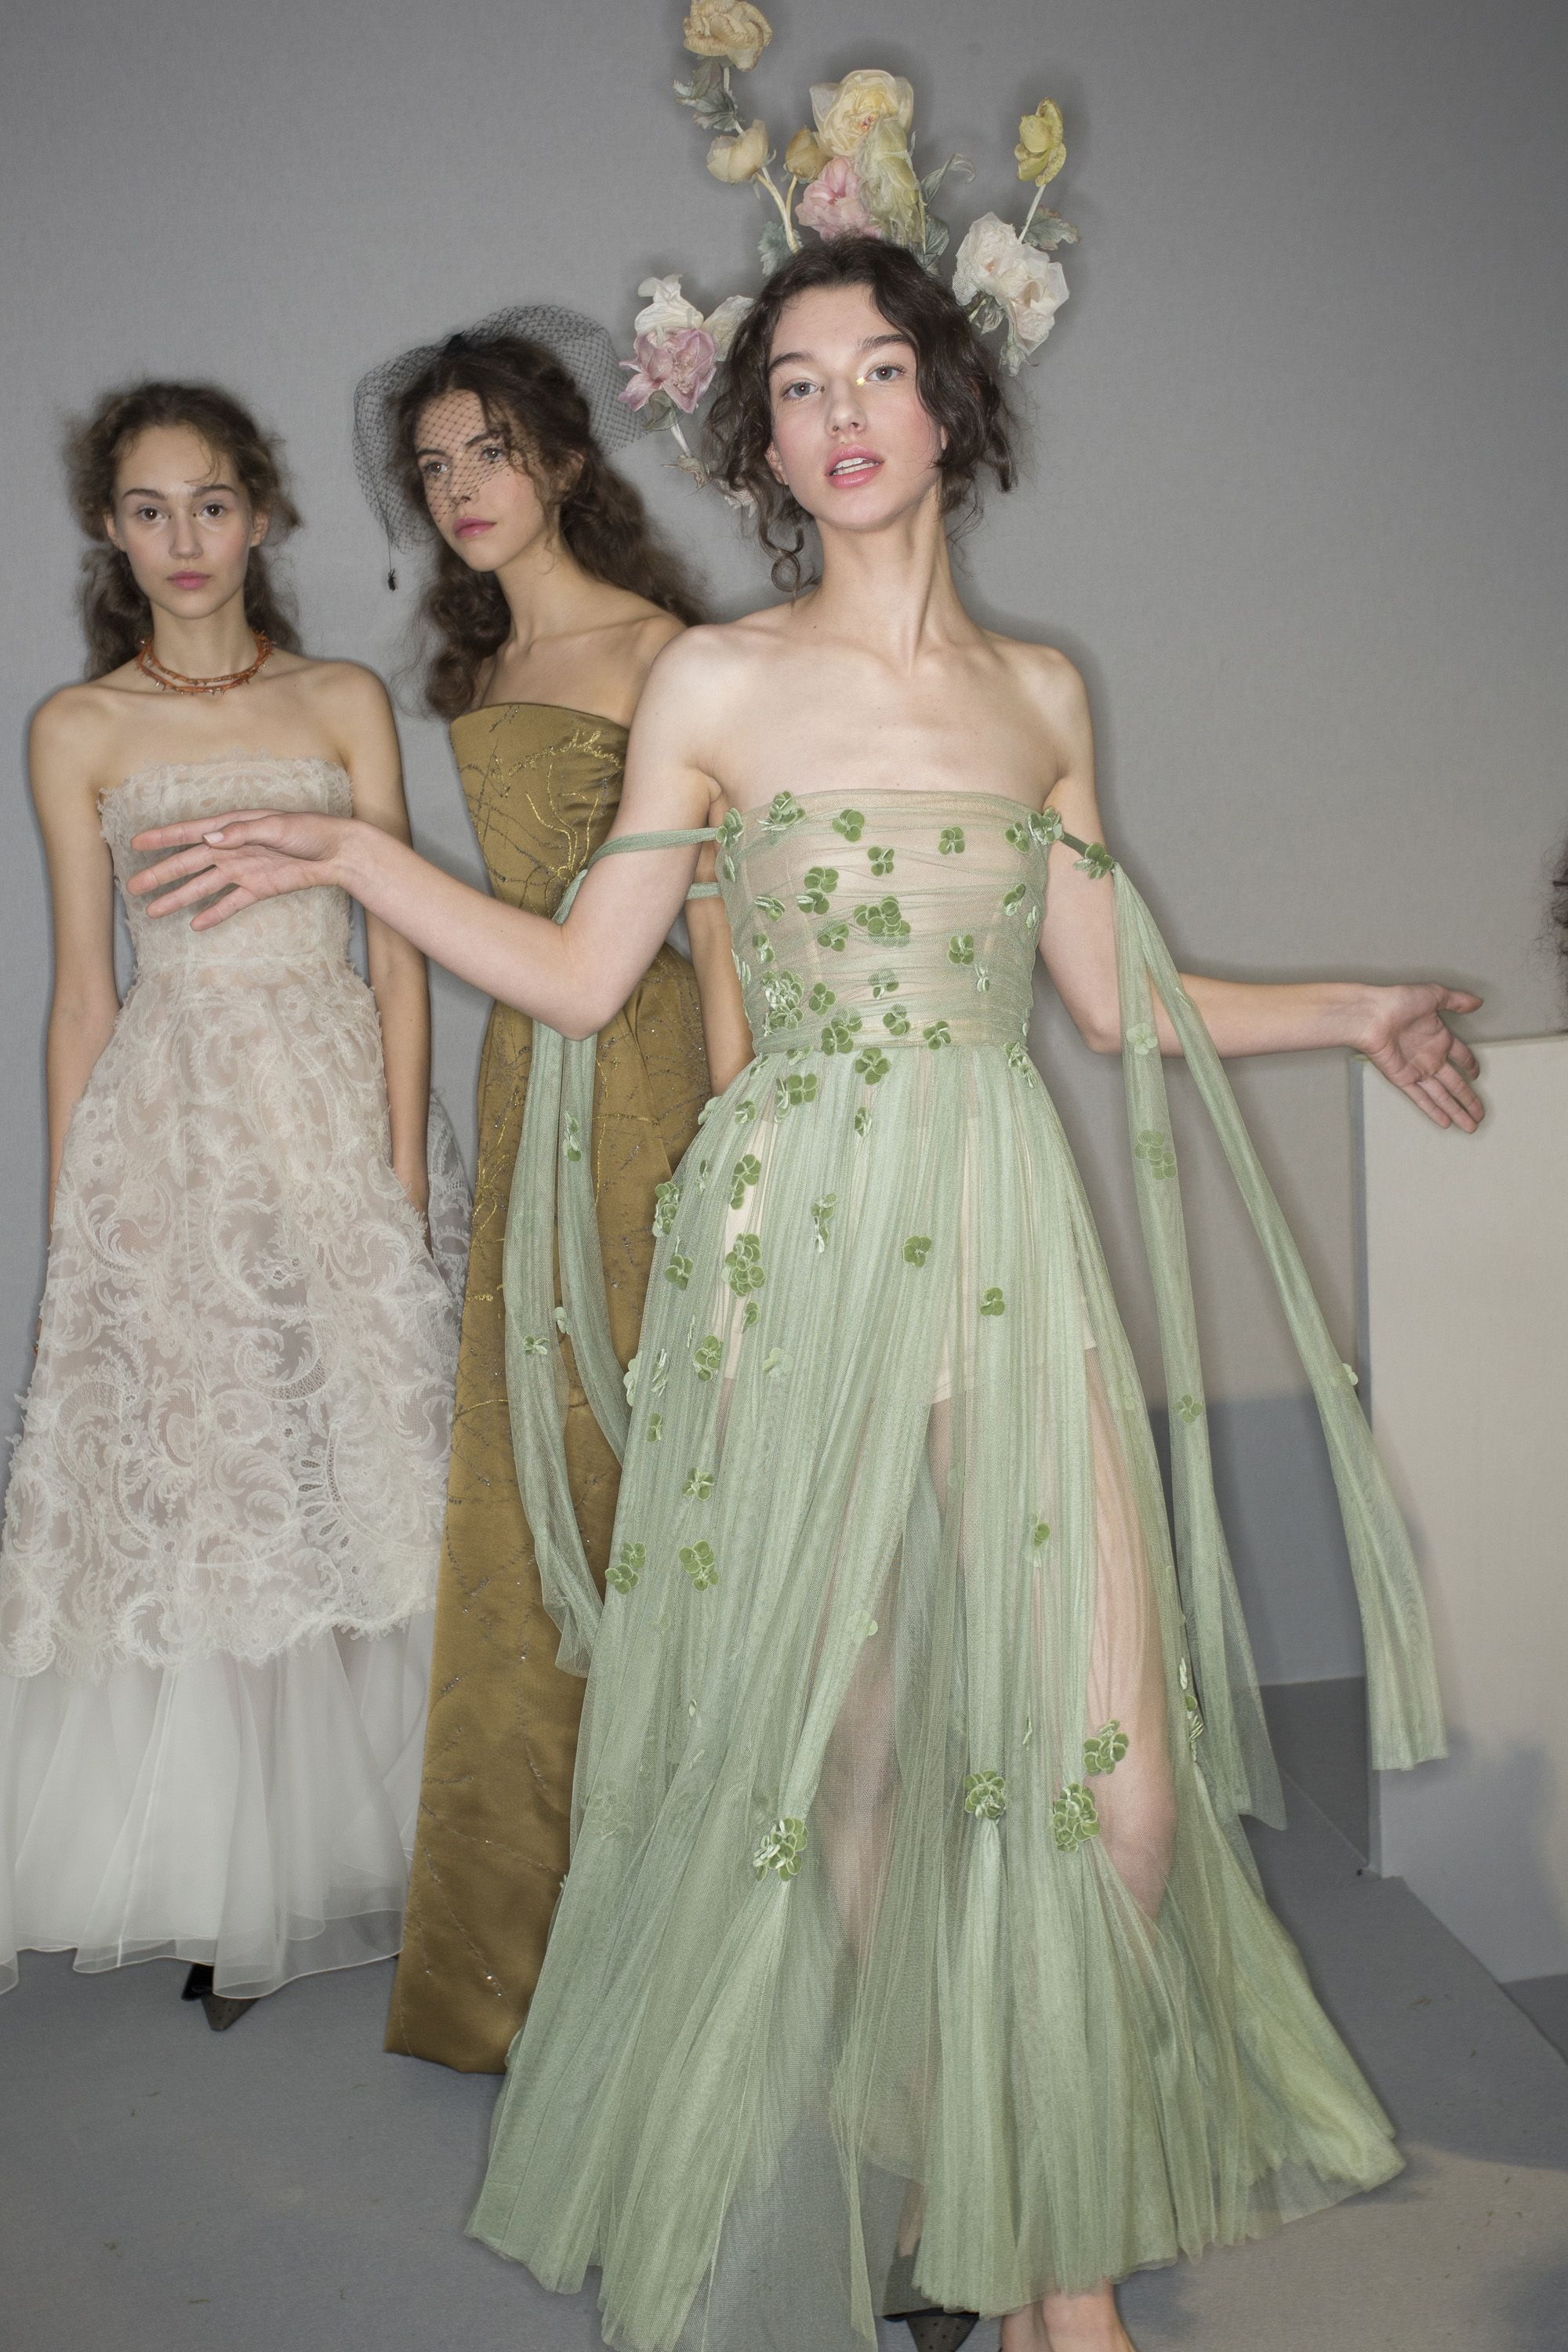 Christian Dior Haute Couture Spring/Summer 2017 Backstage